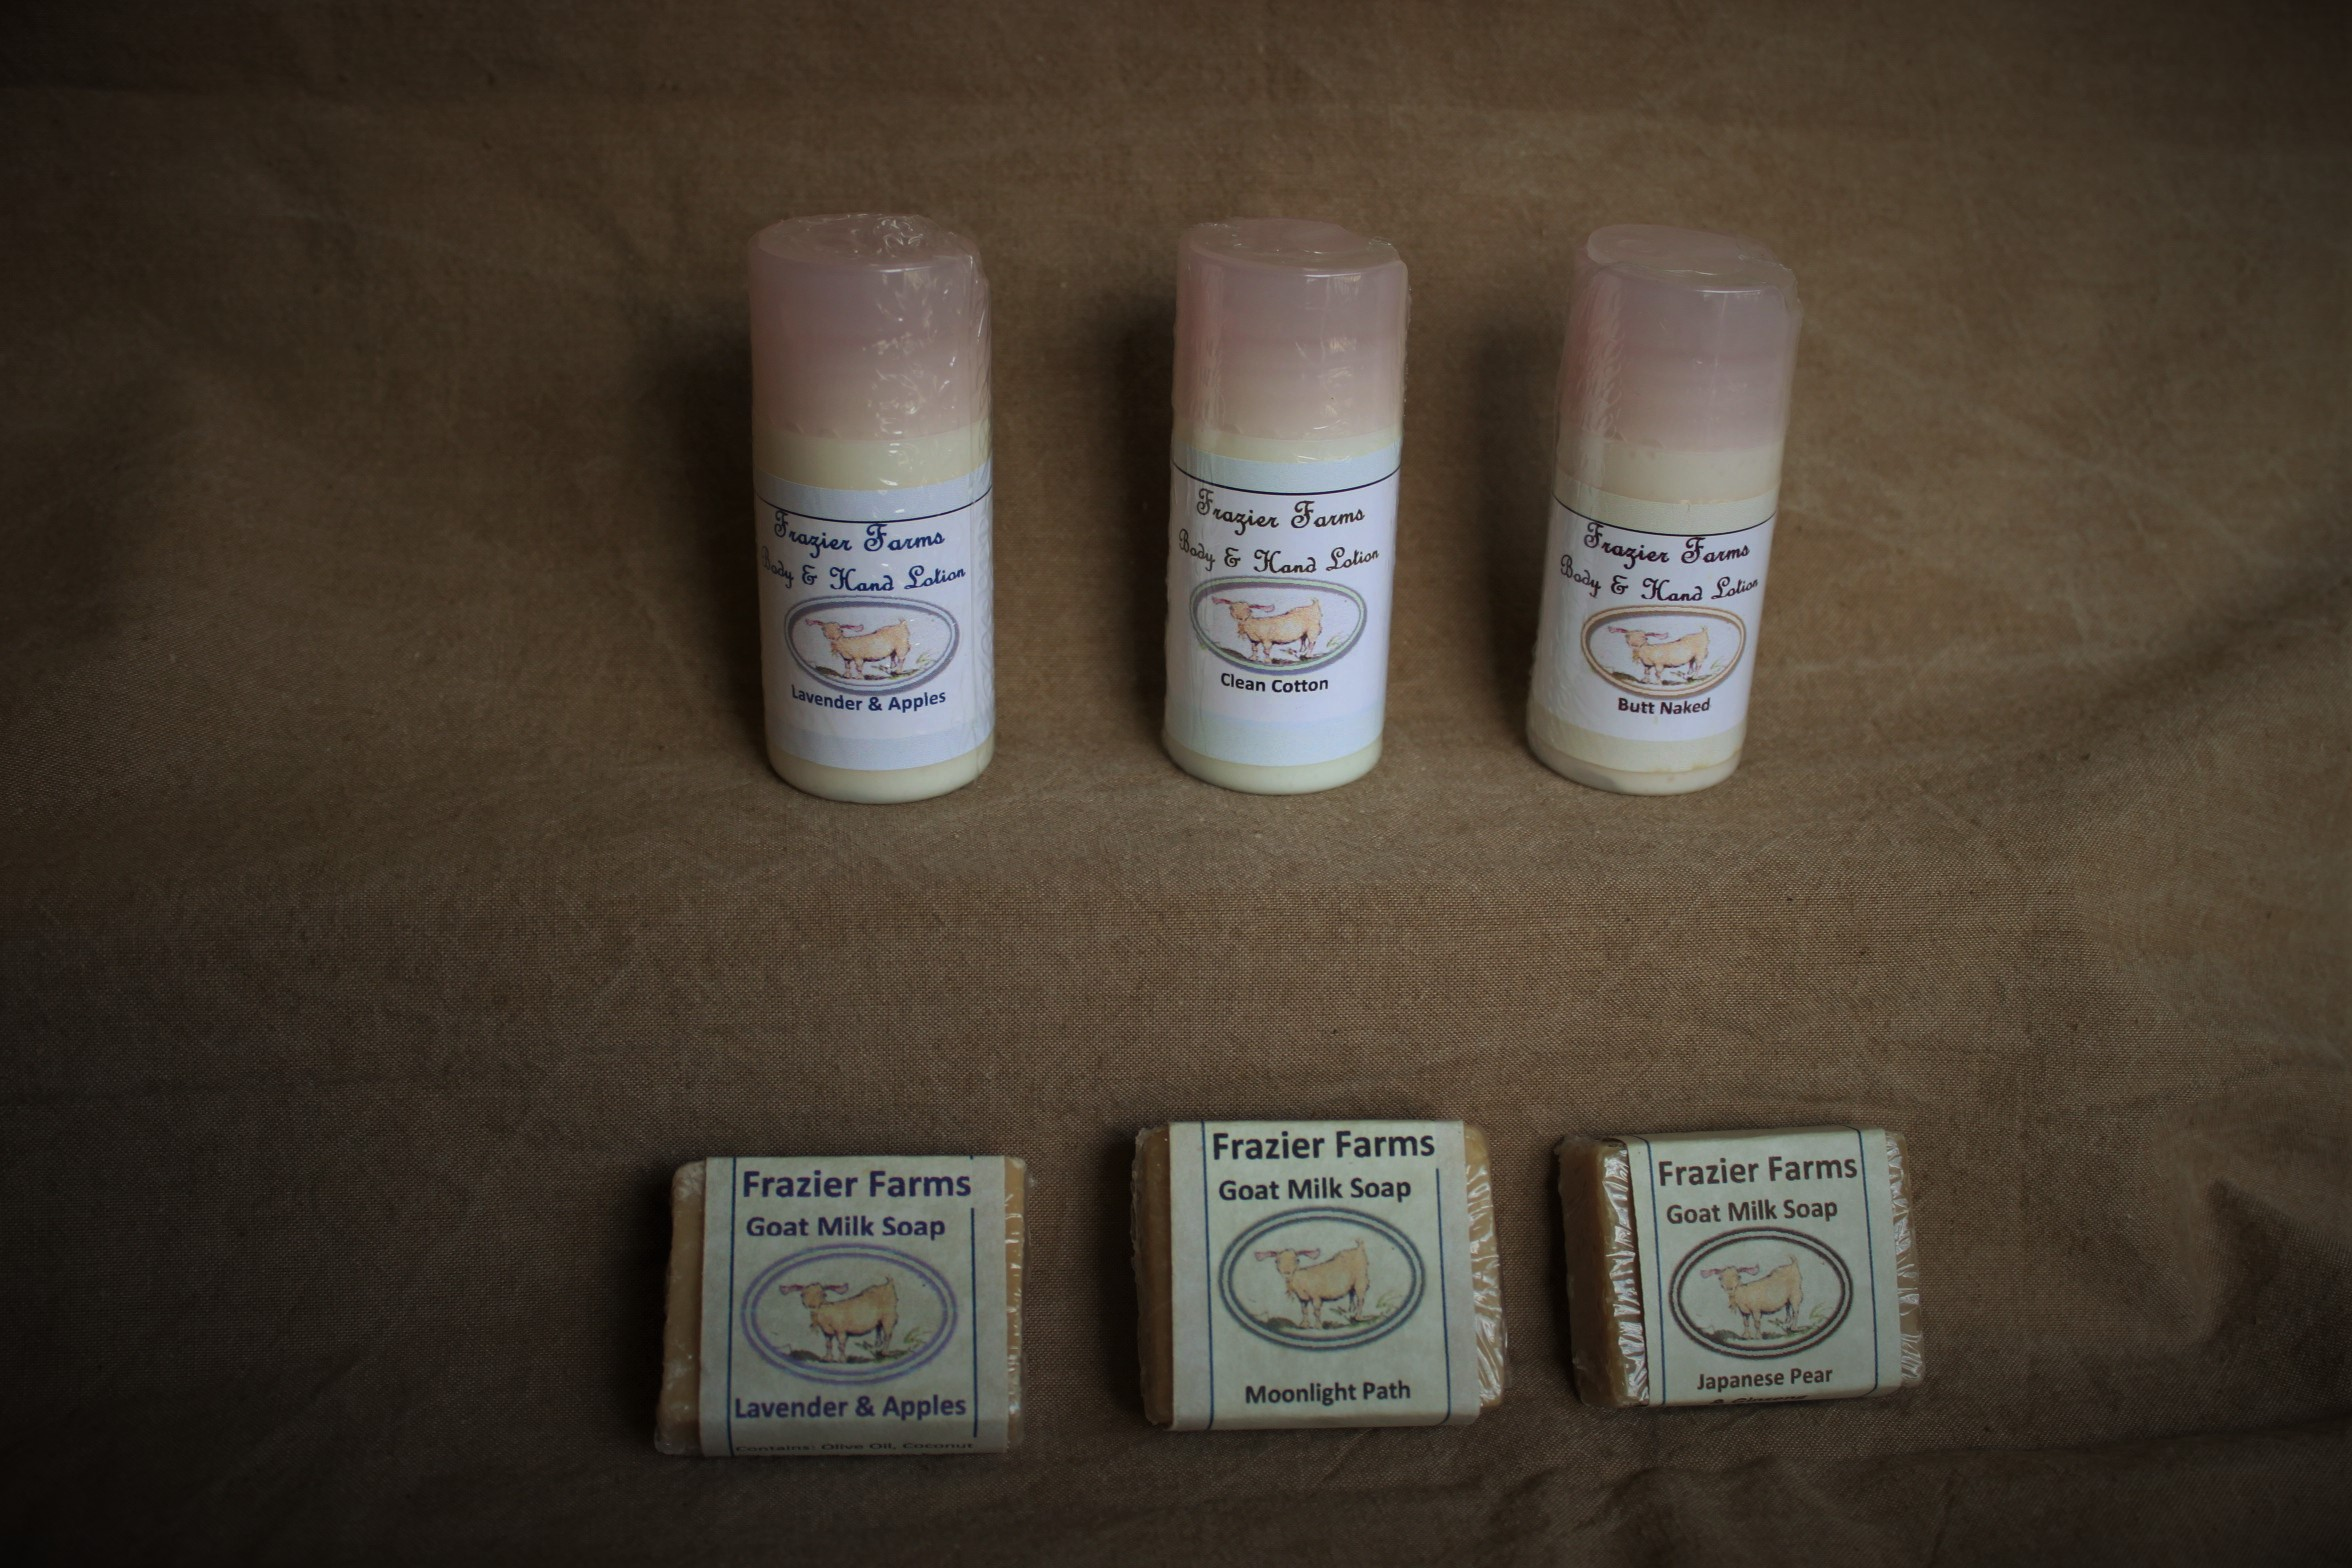 Select 3 soaps & Lotions